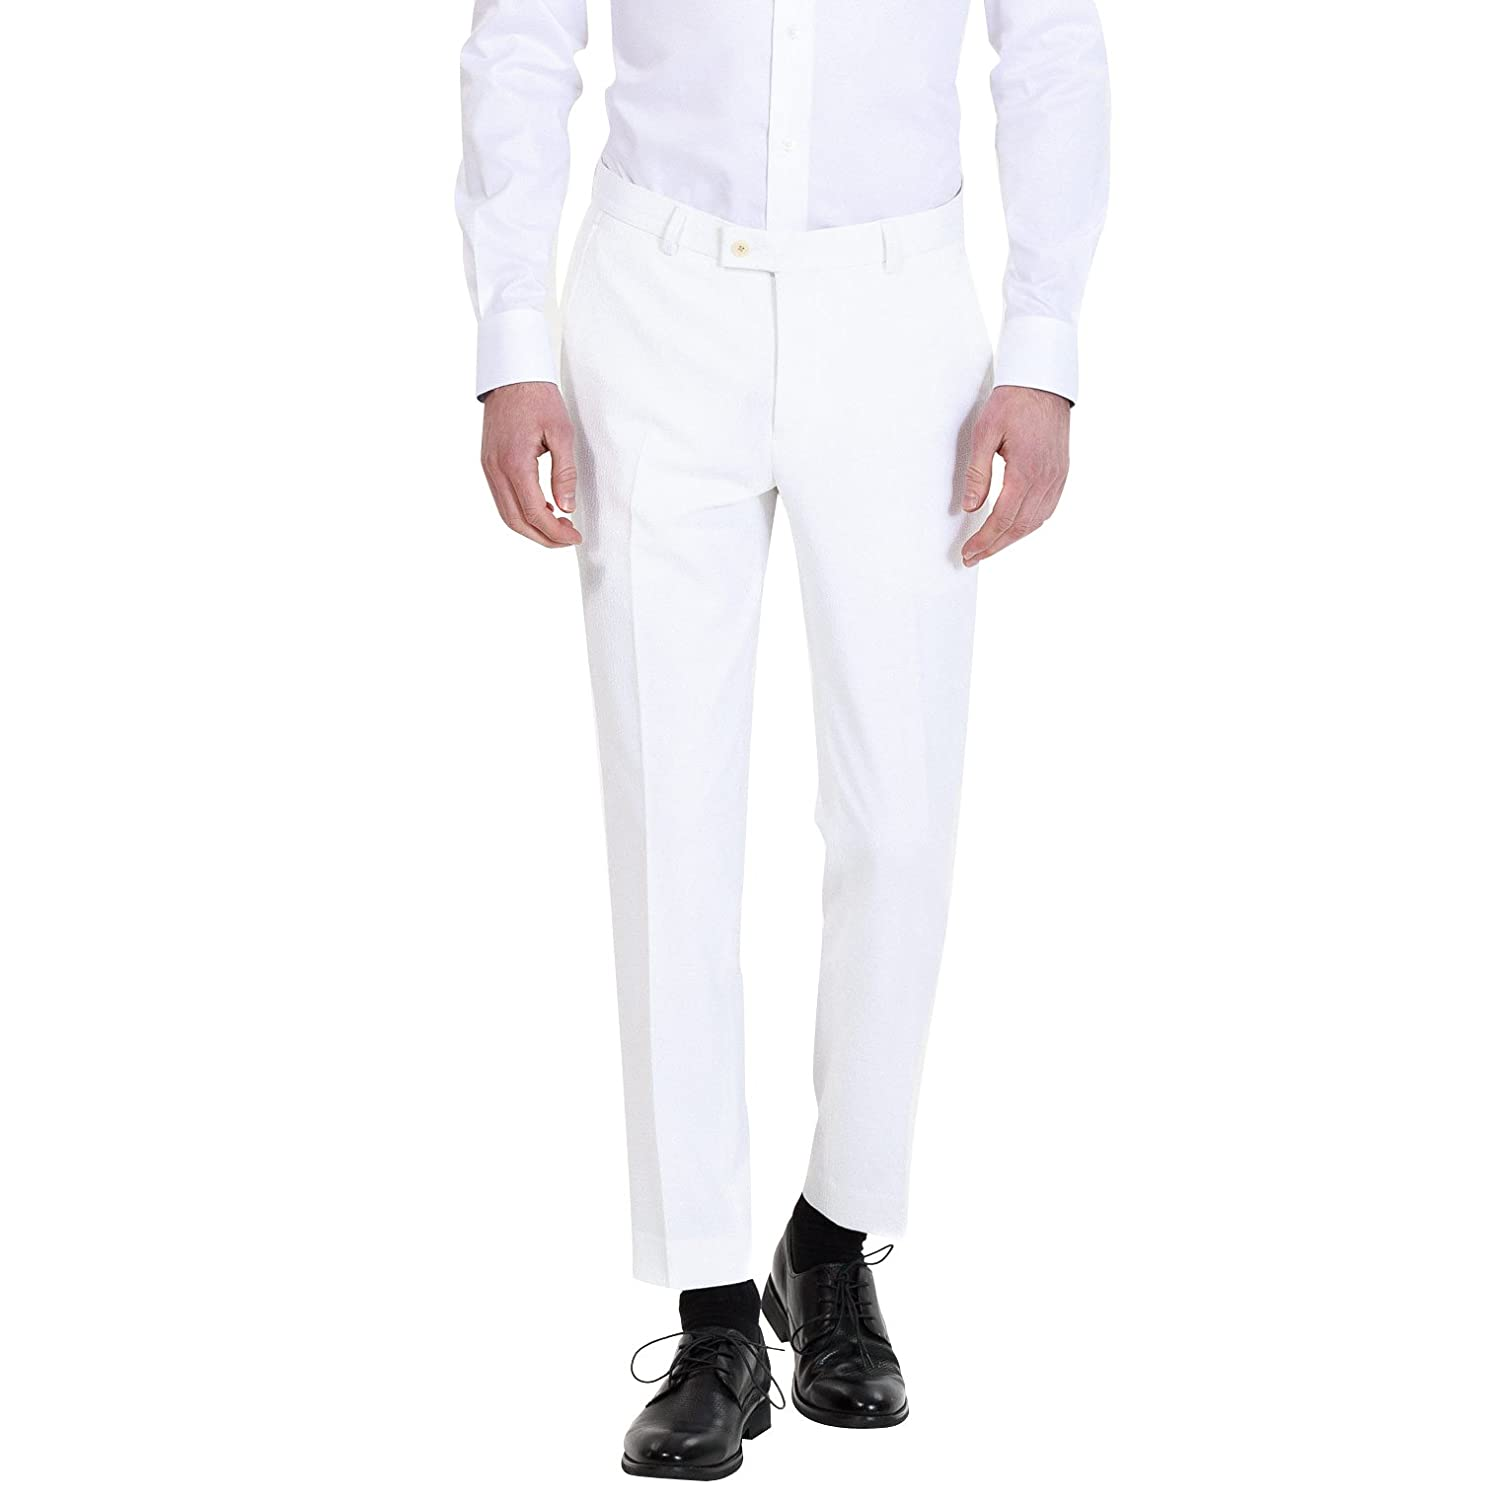 HBDesign Mens Formal Slim Fit Flat Front Straight Iron Free Trousers White HMP5031WH